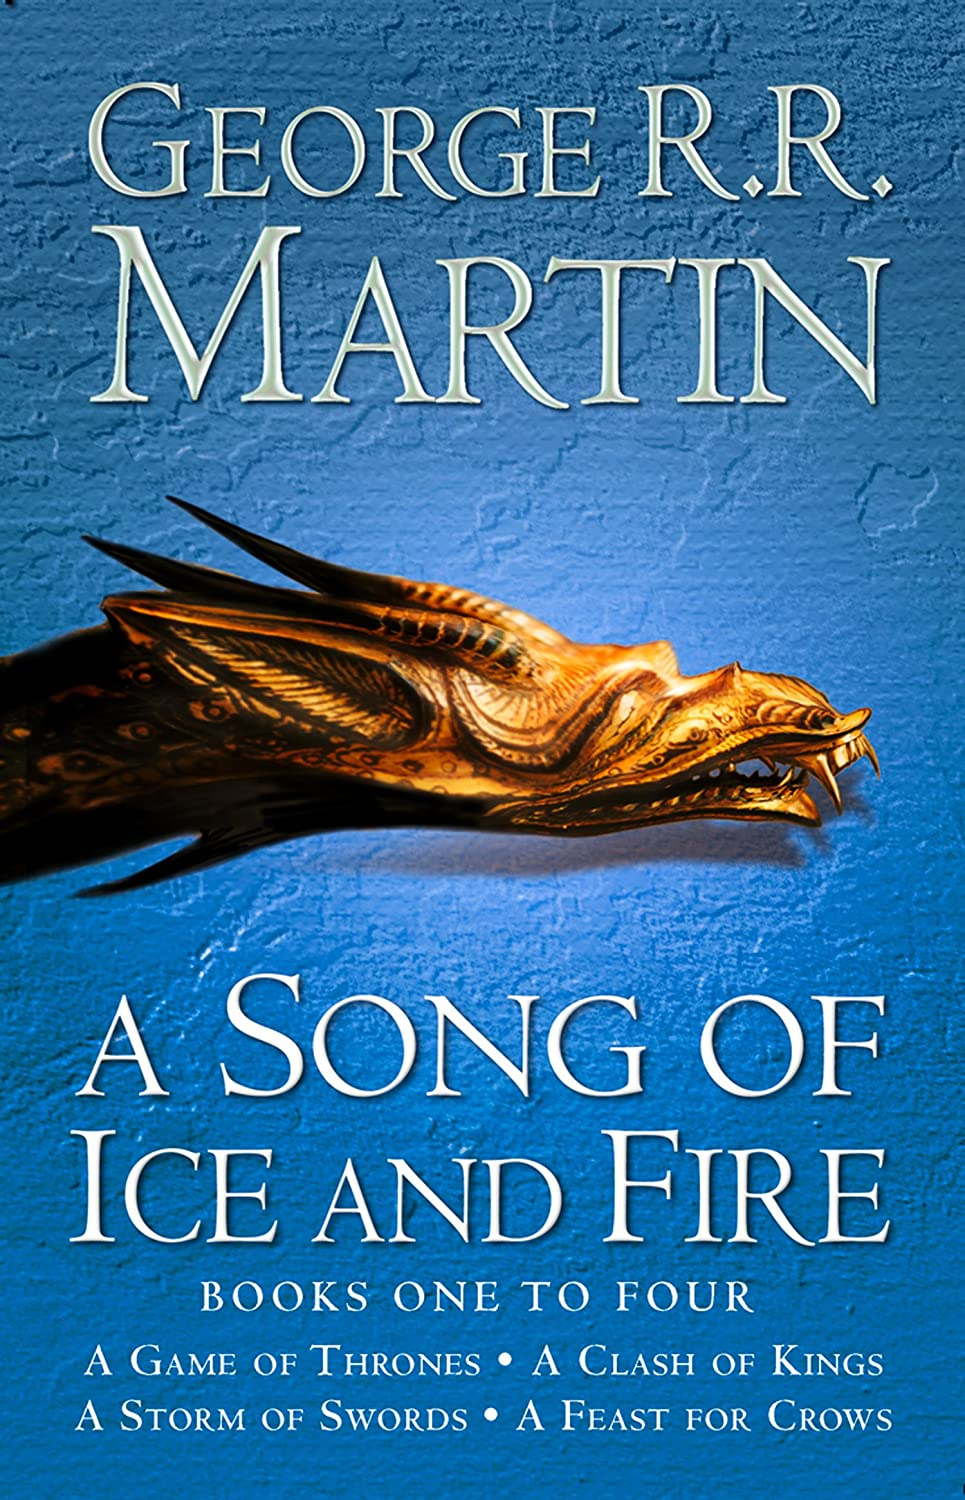 A Game of Thrones, book review